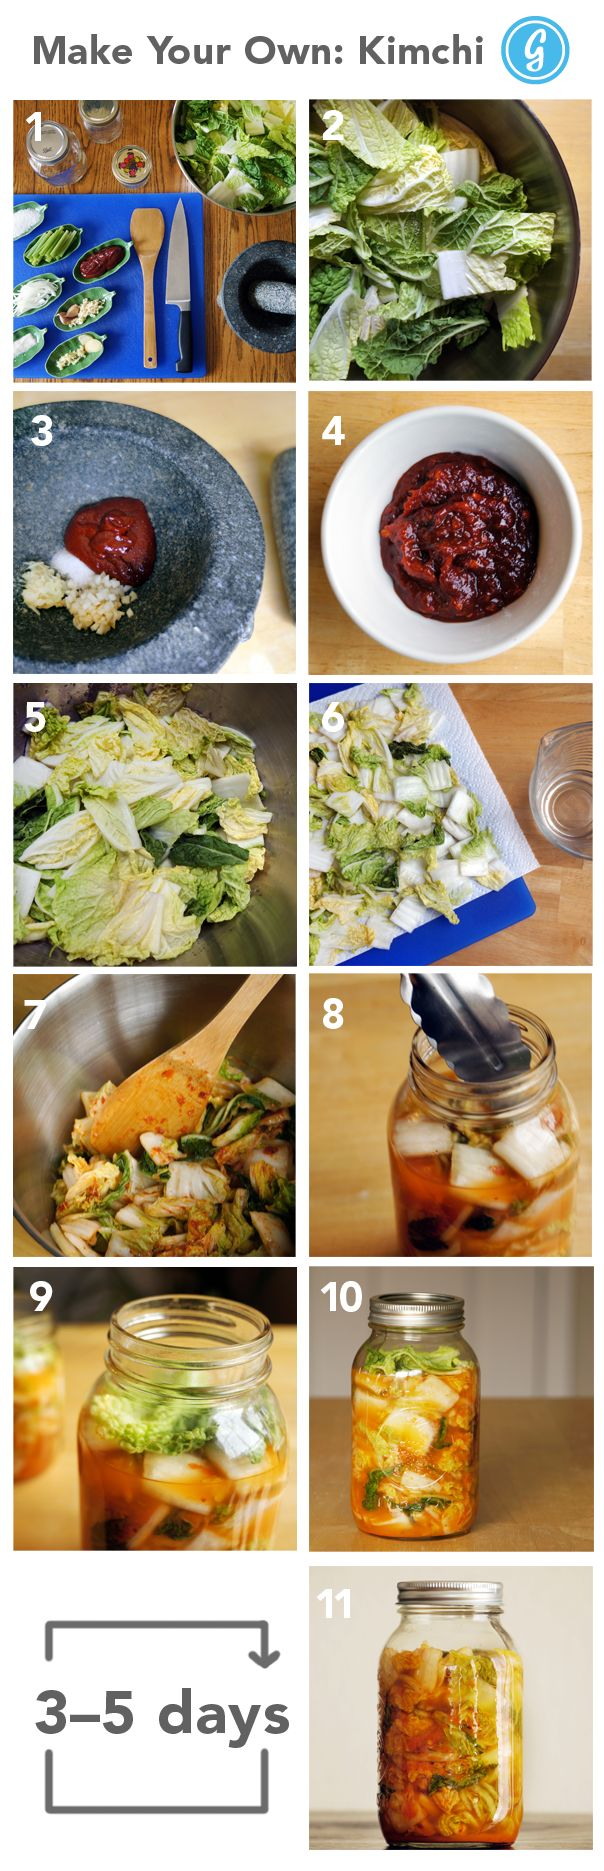 867 best korean recipes images on pinterest korean recipes korean hot and healthy how to make better kimchi at home raw fish recipeshealthy korean recipeskorean foodkorean forumfinder Choice Image